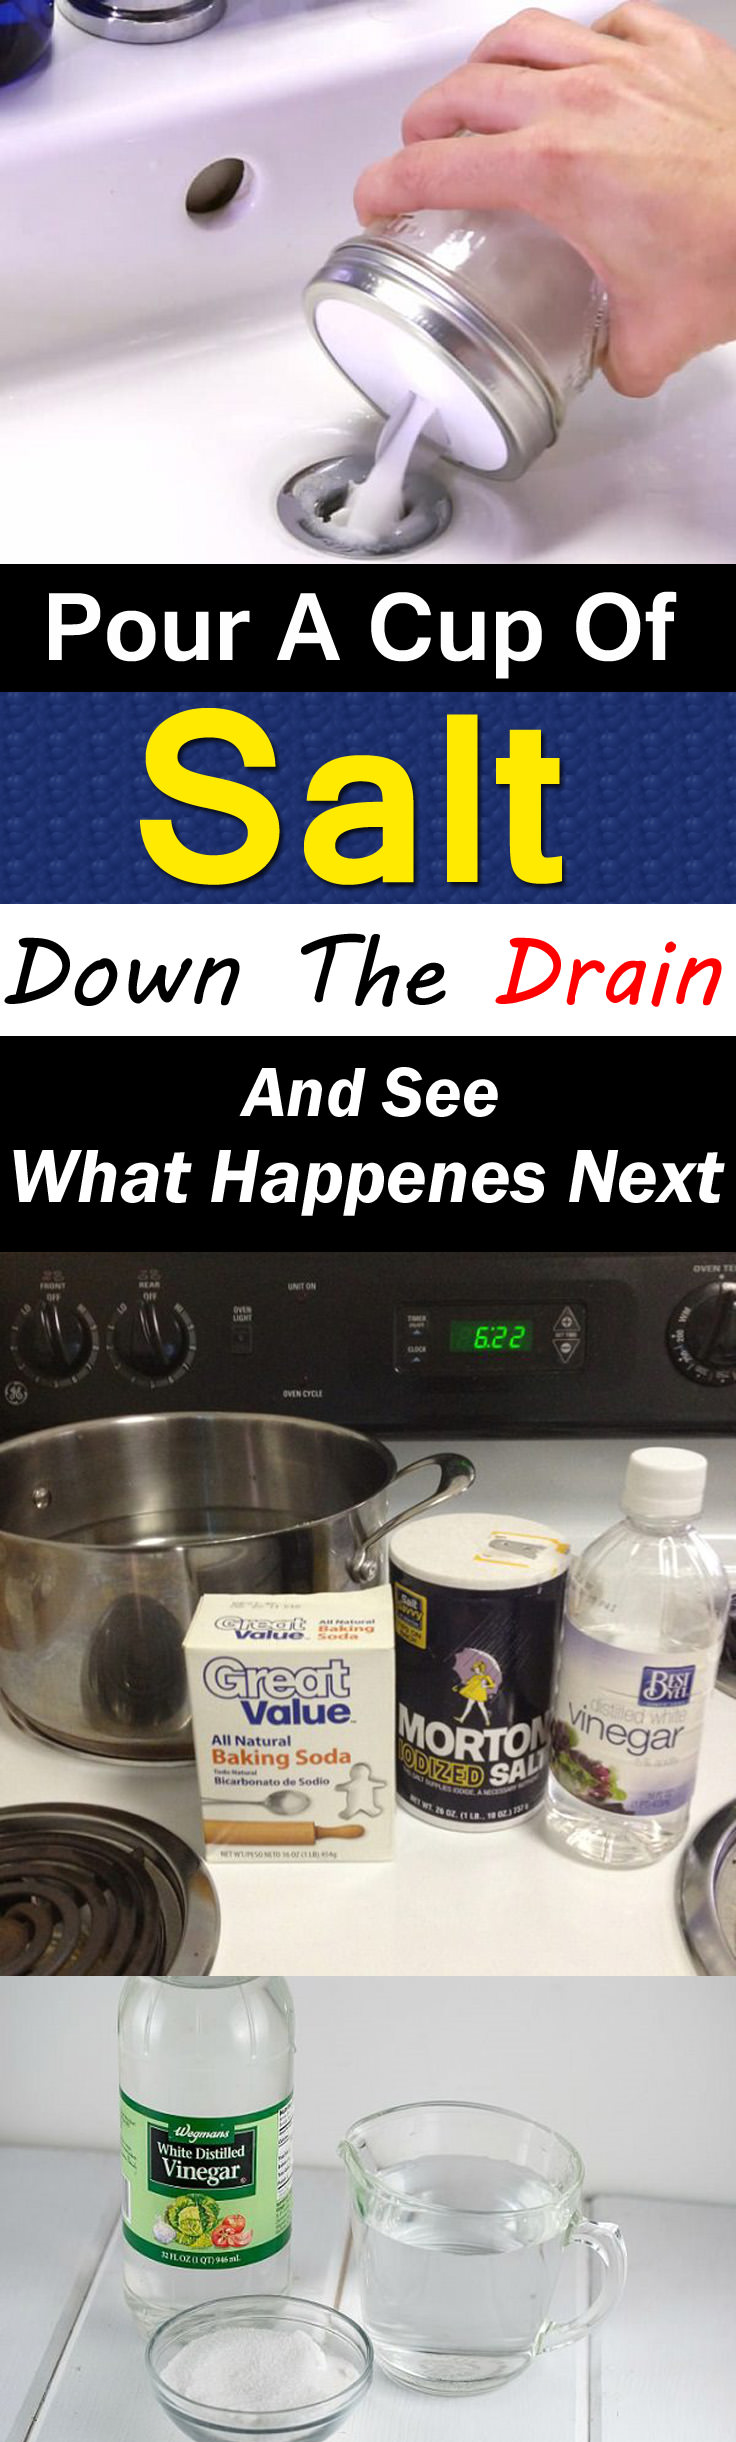 If clogged drain is troubling you, using salt can help you. It's effective. Learn how to do this in this article!